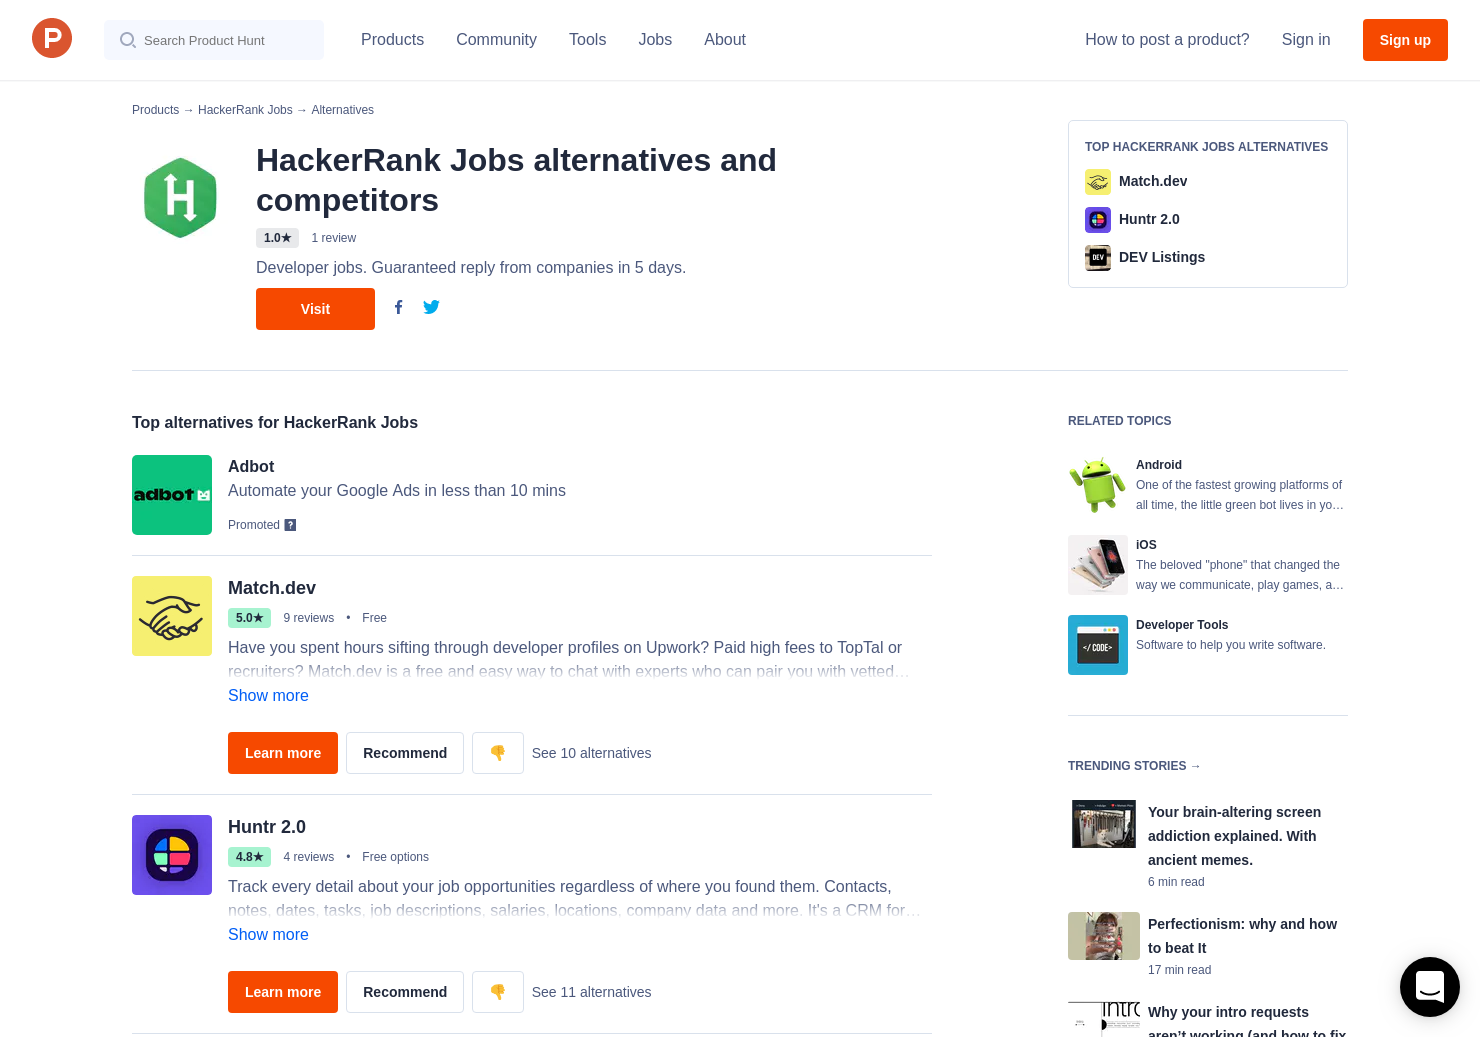 10 Alternatives to HackerRank Jobs for Android, iPhone